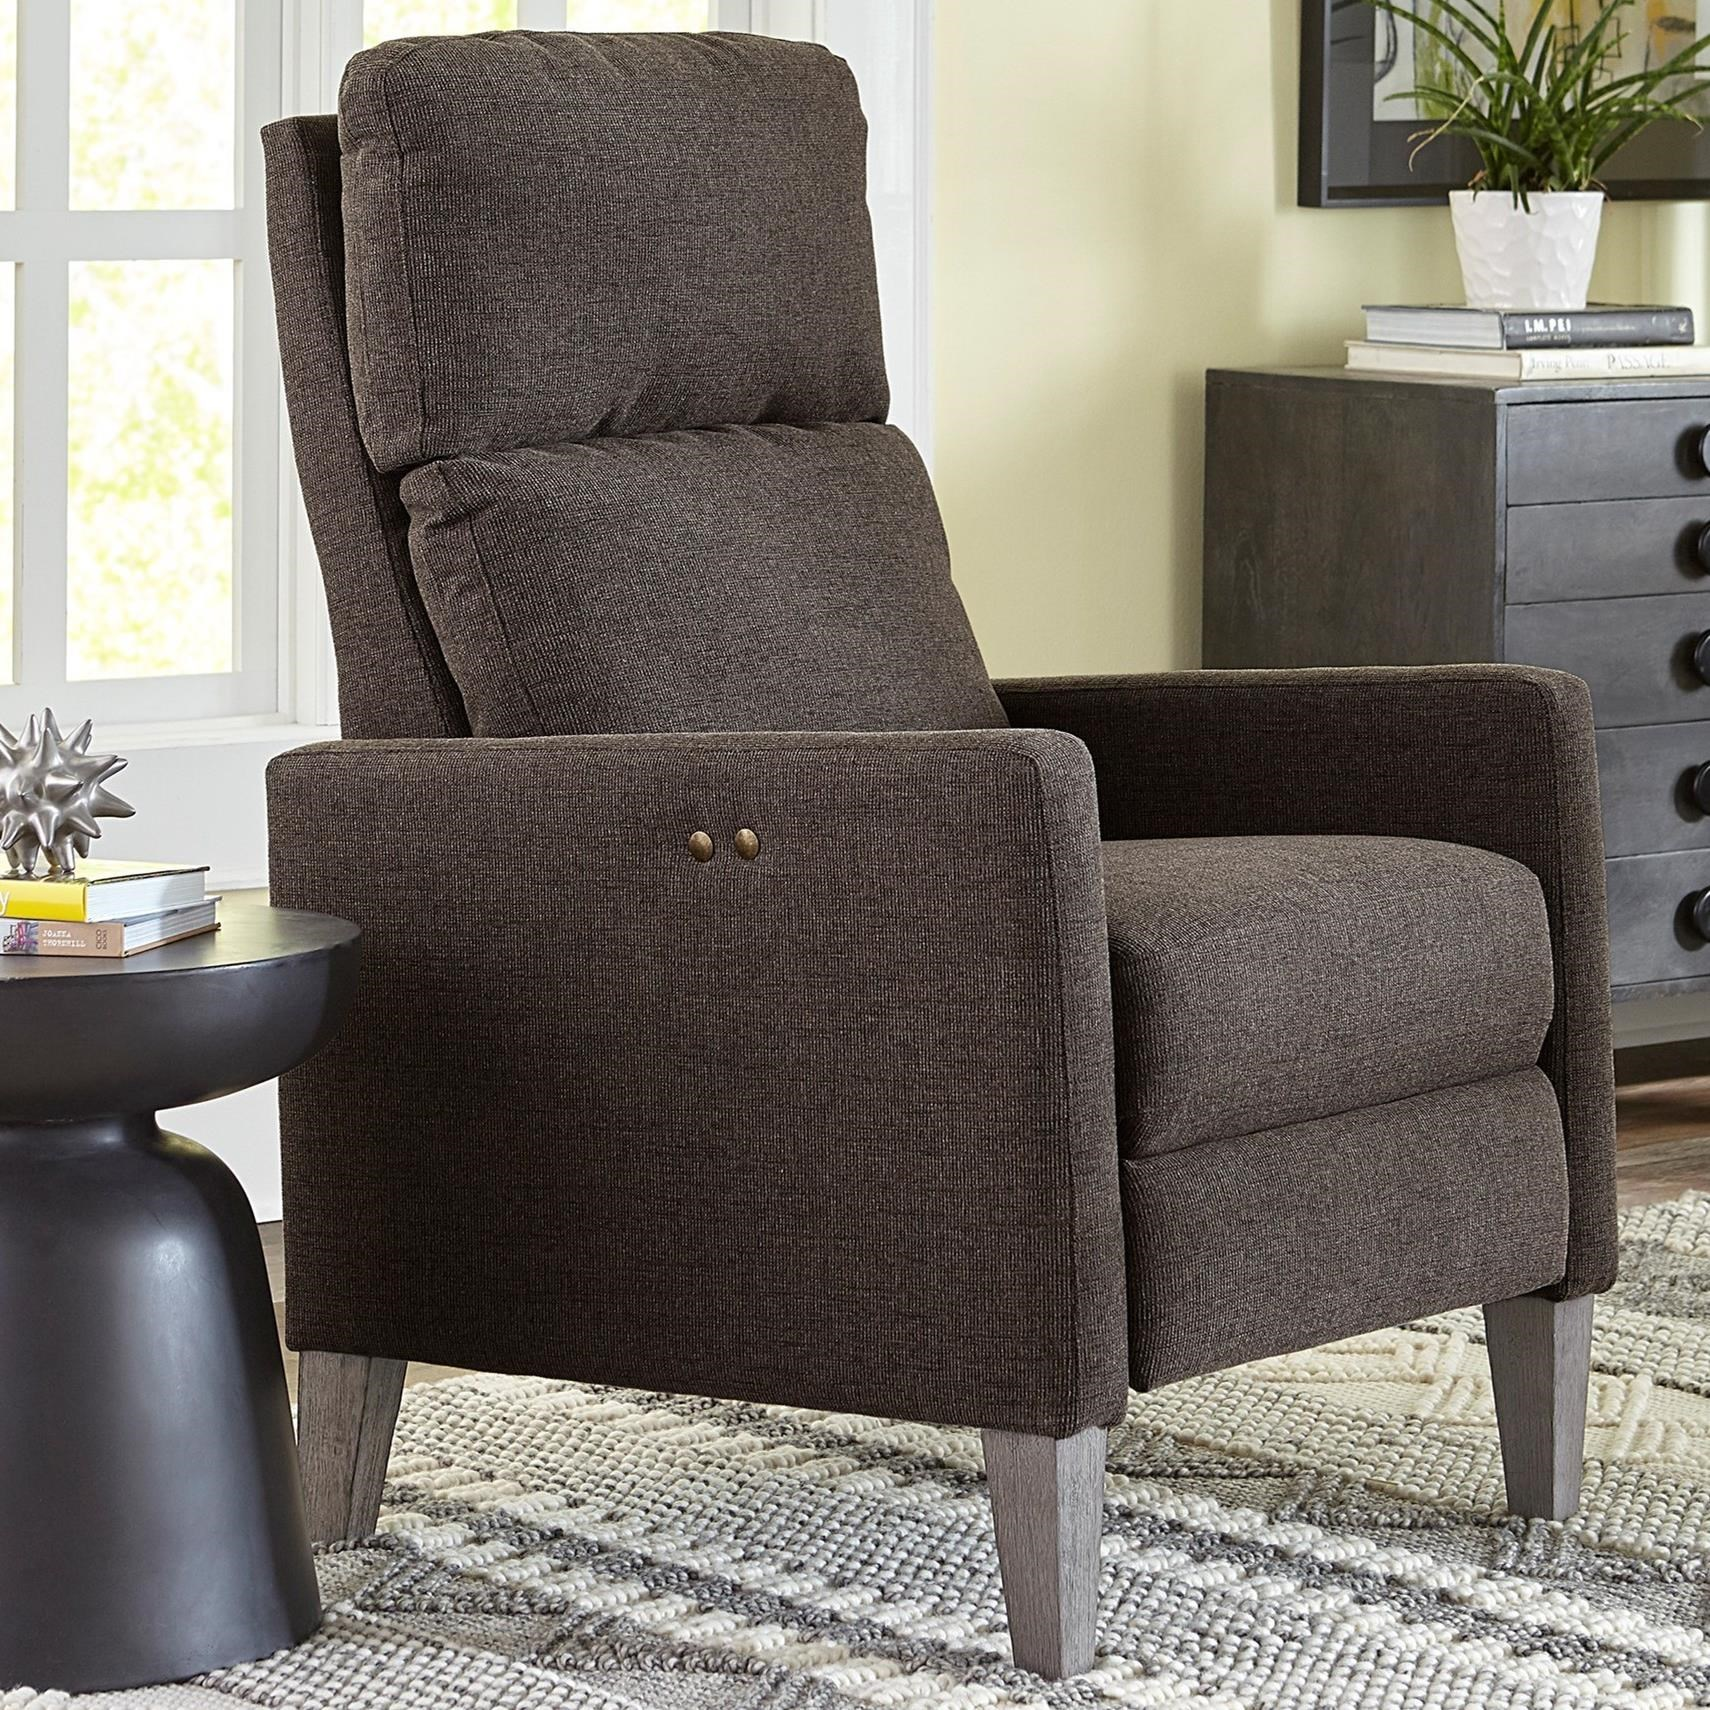 Small Scale Push Back Recliner